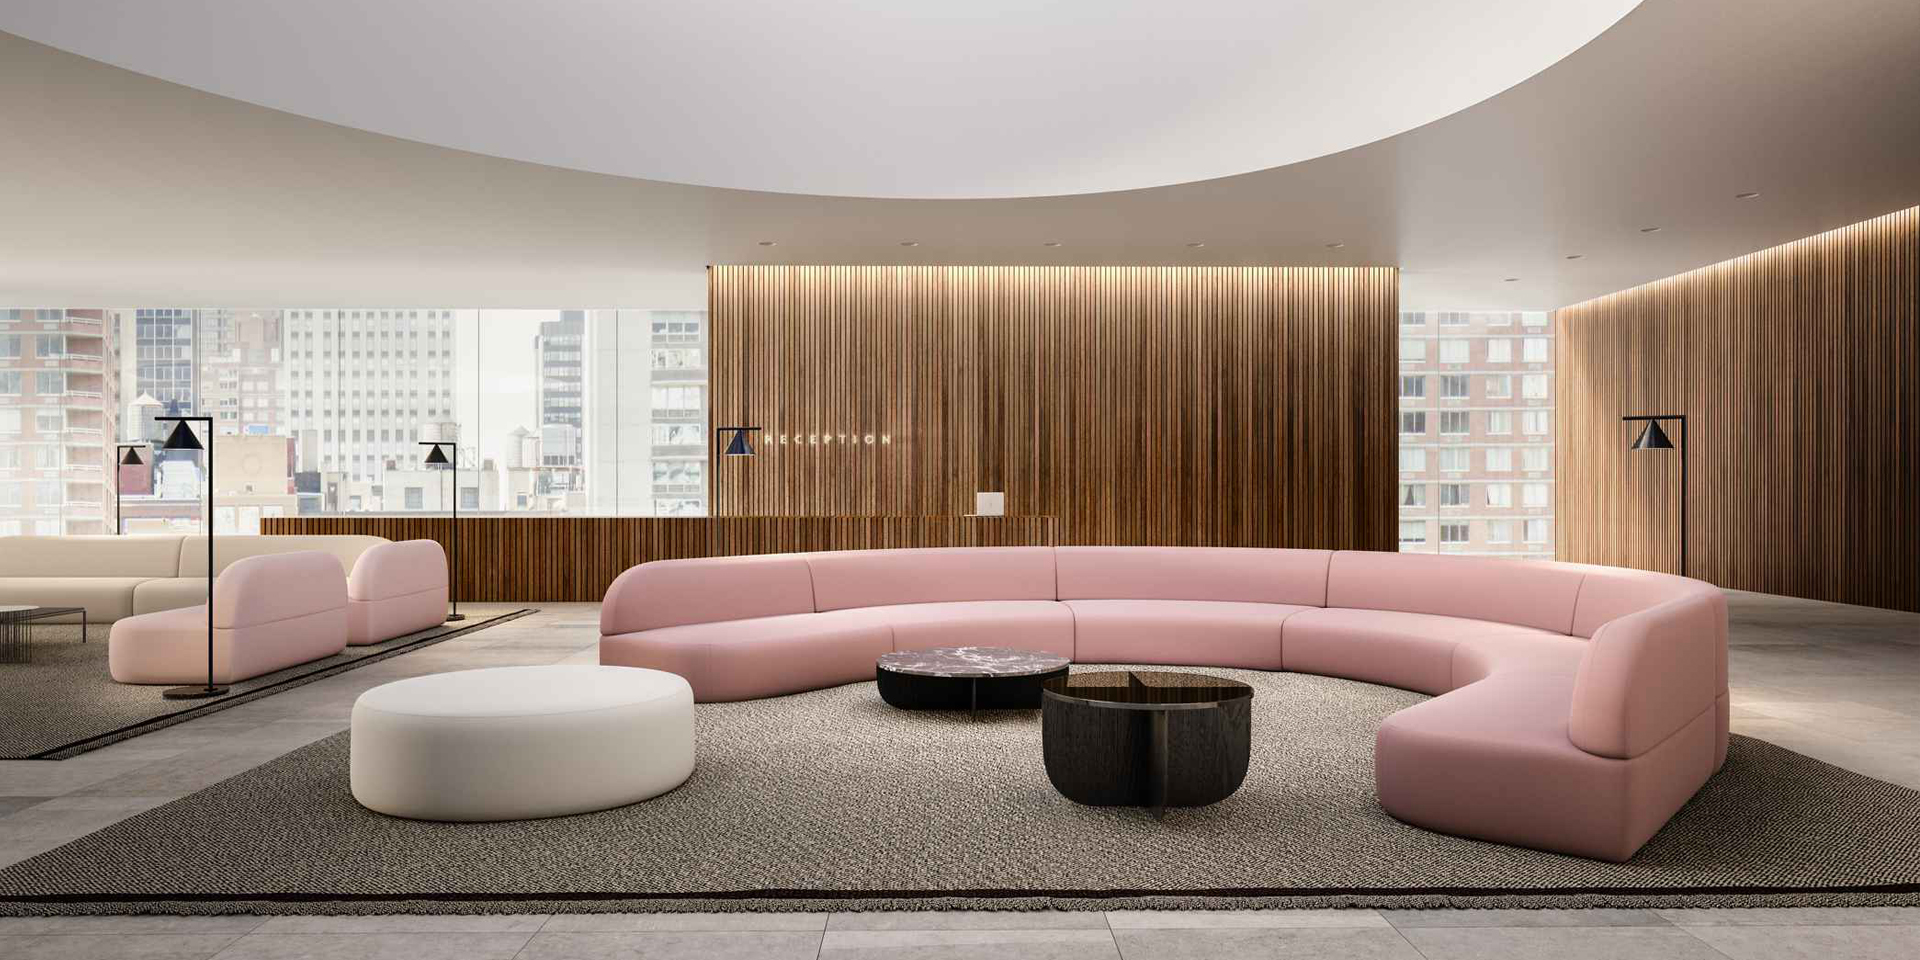 Sofa Styles for the Hospitality Industry